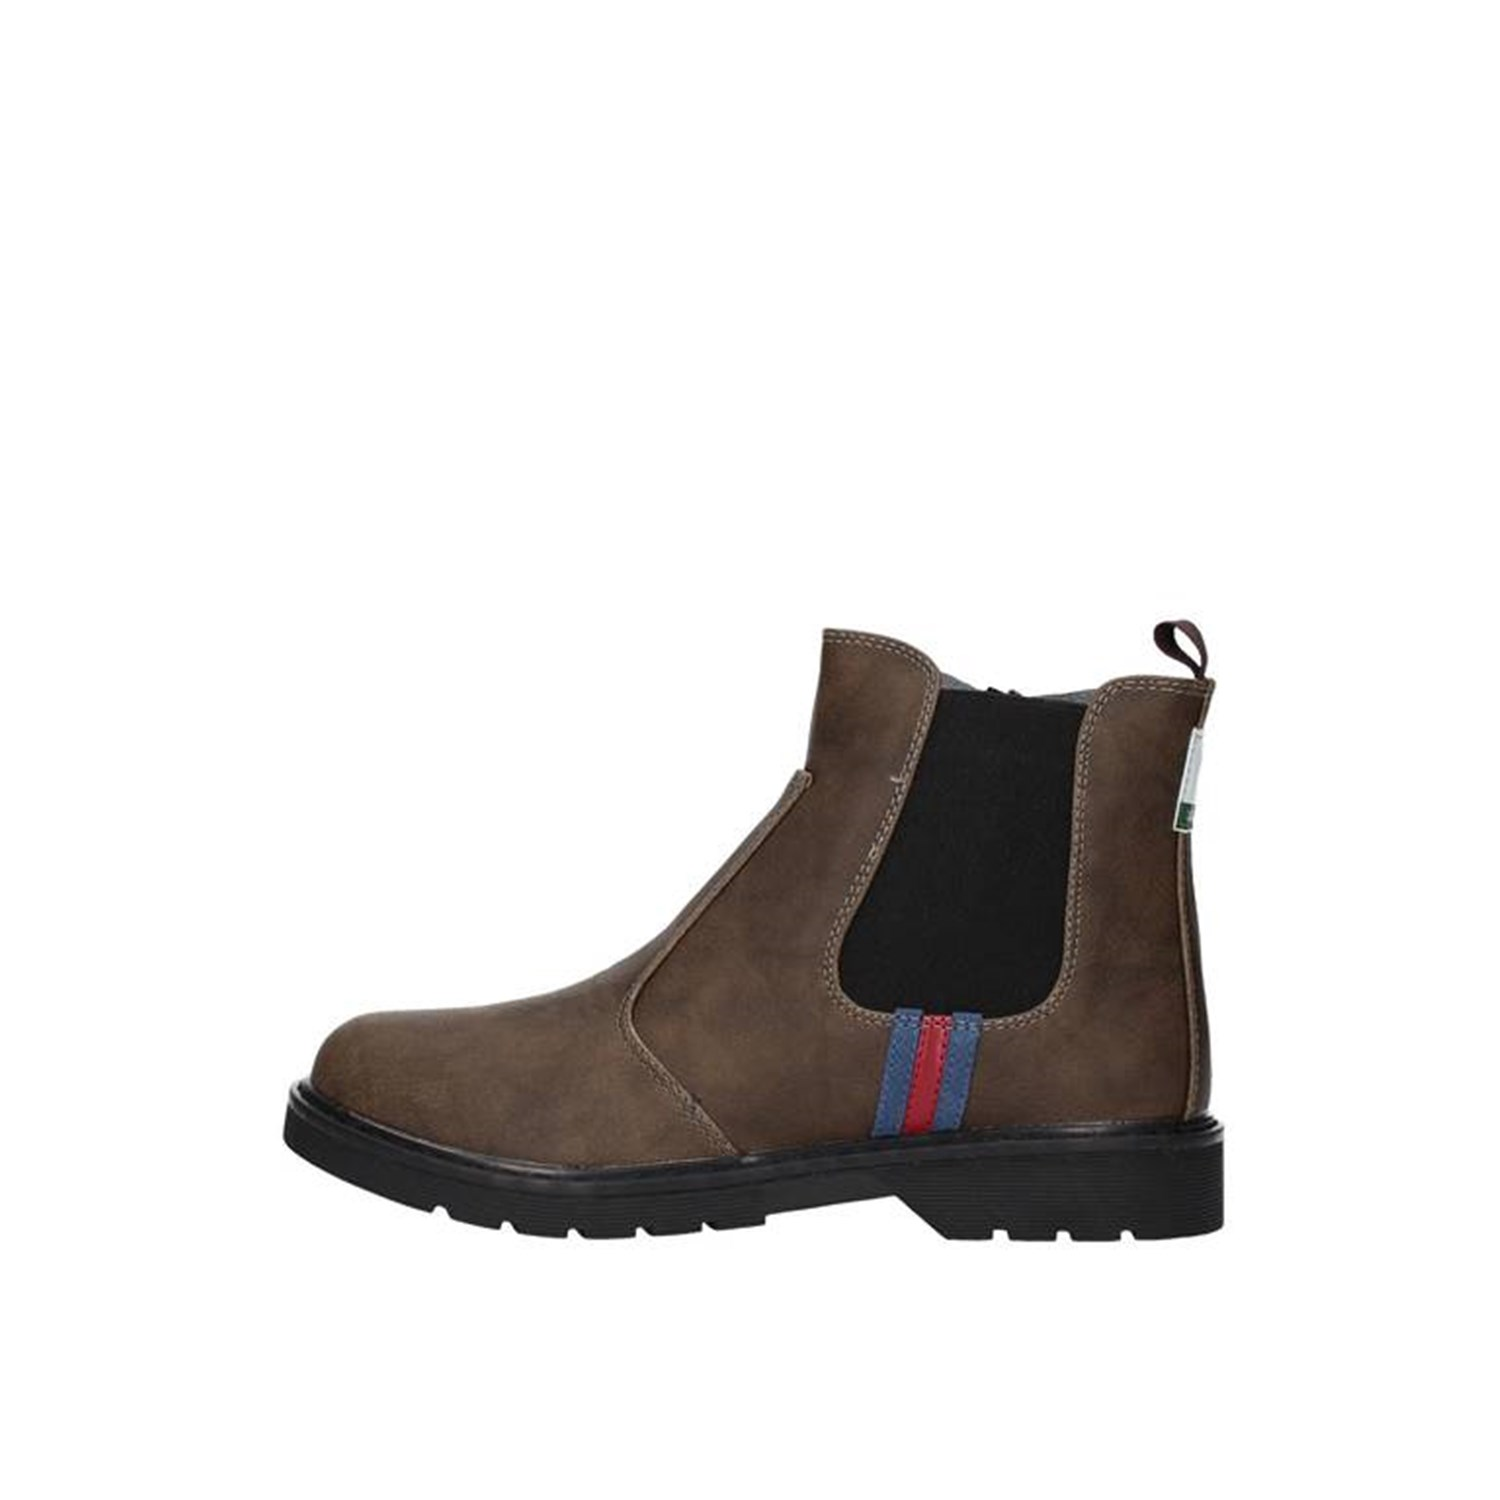 Balducci Shoes Child boots BROWN BS203